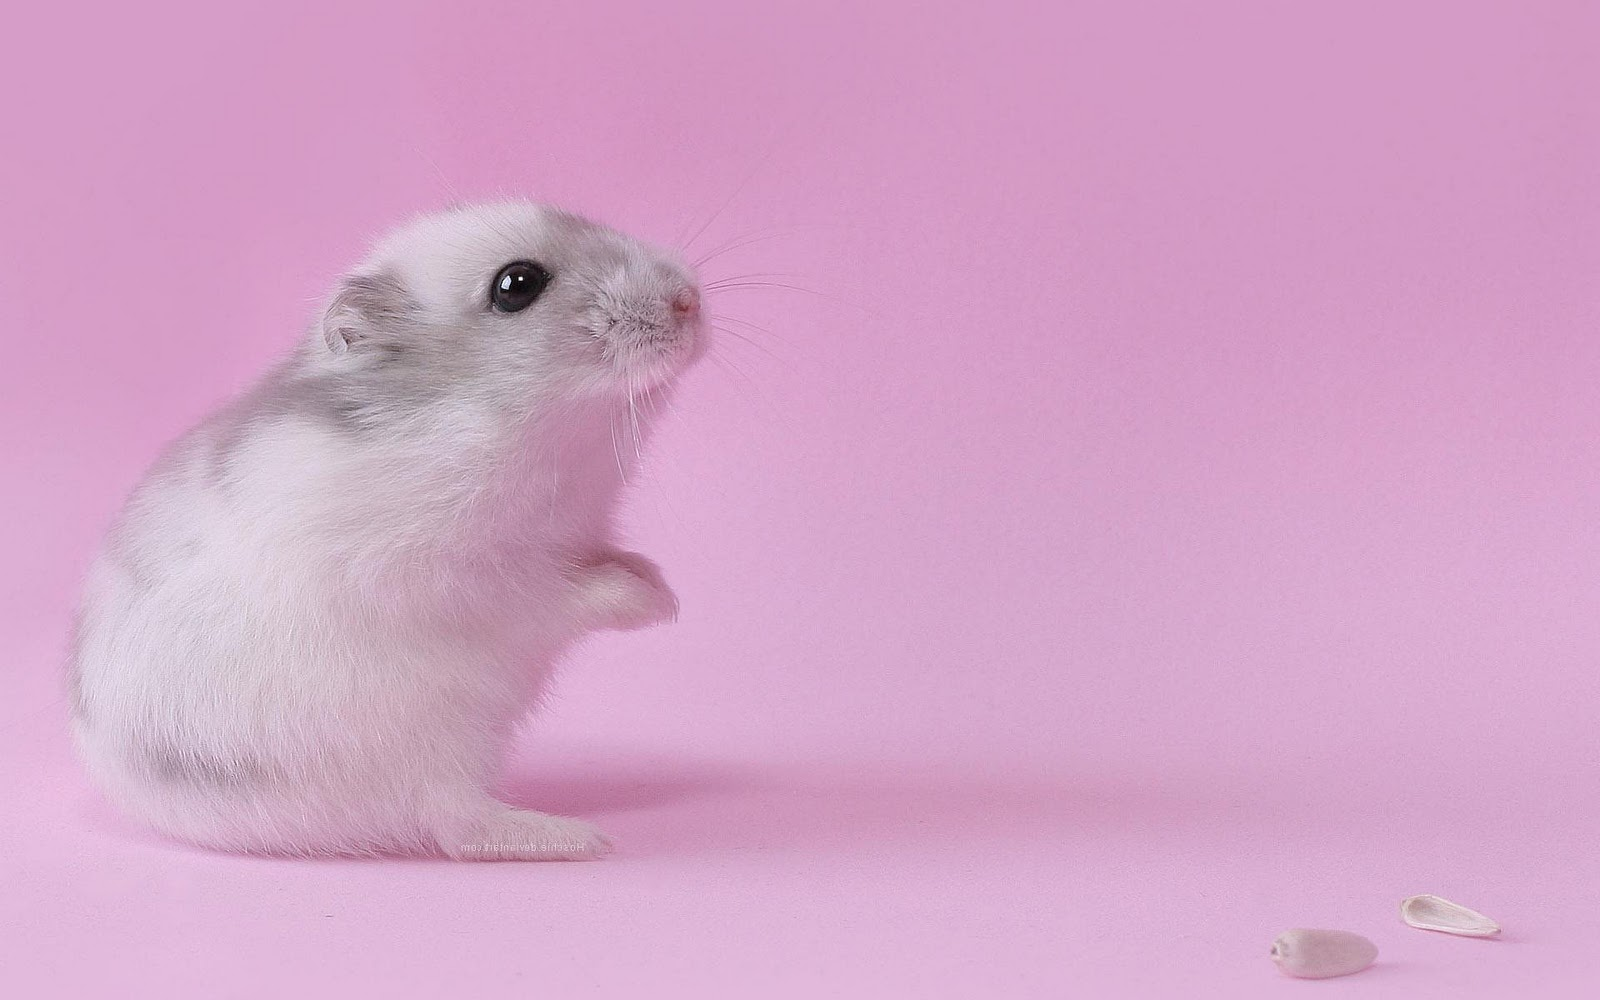 Cute Love Hd Wallpapers For Mobile Phones Hamster Pink Wallpaper Photos 10646 Wallpaper Cool